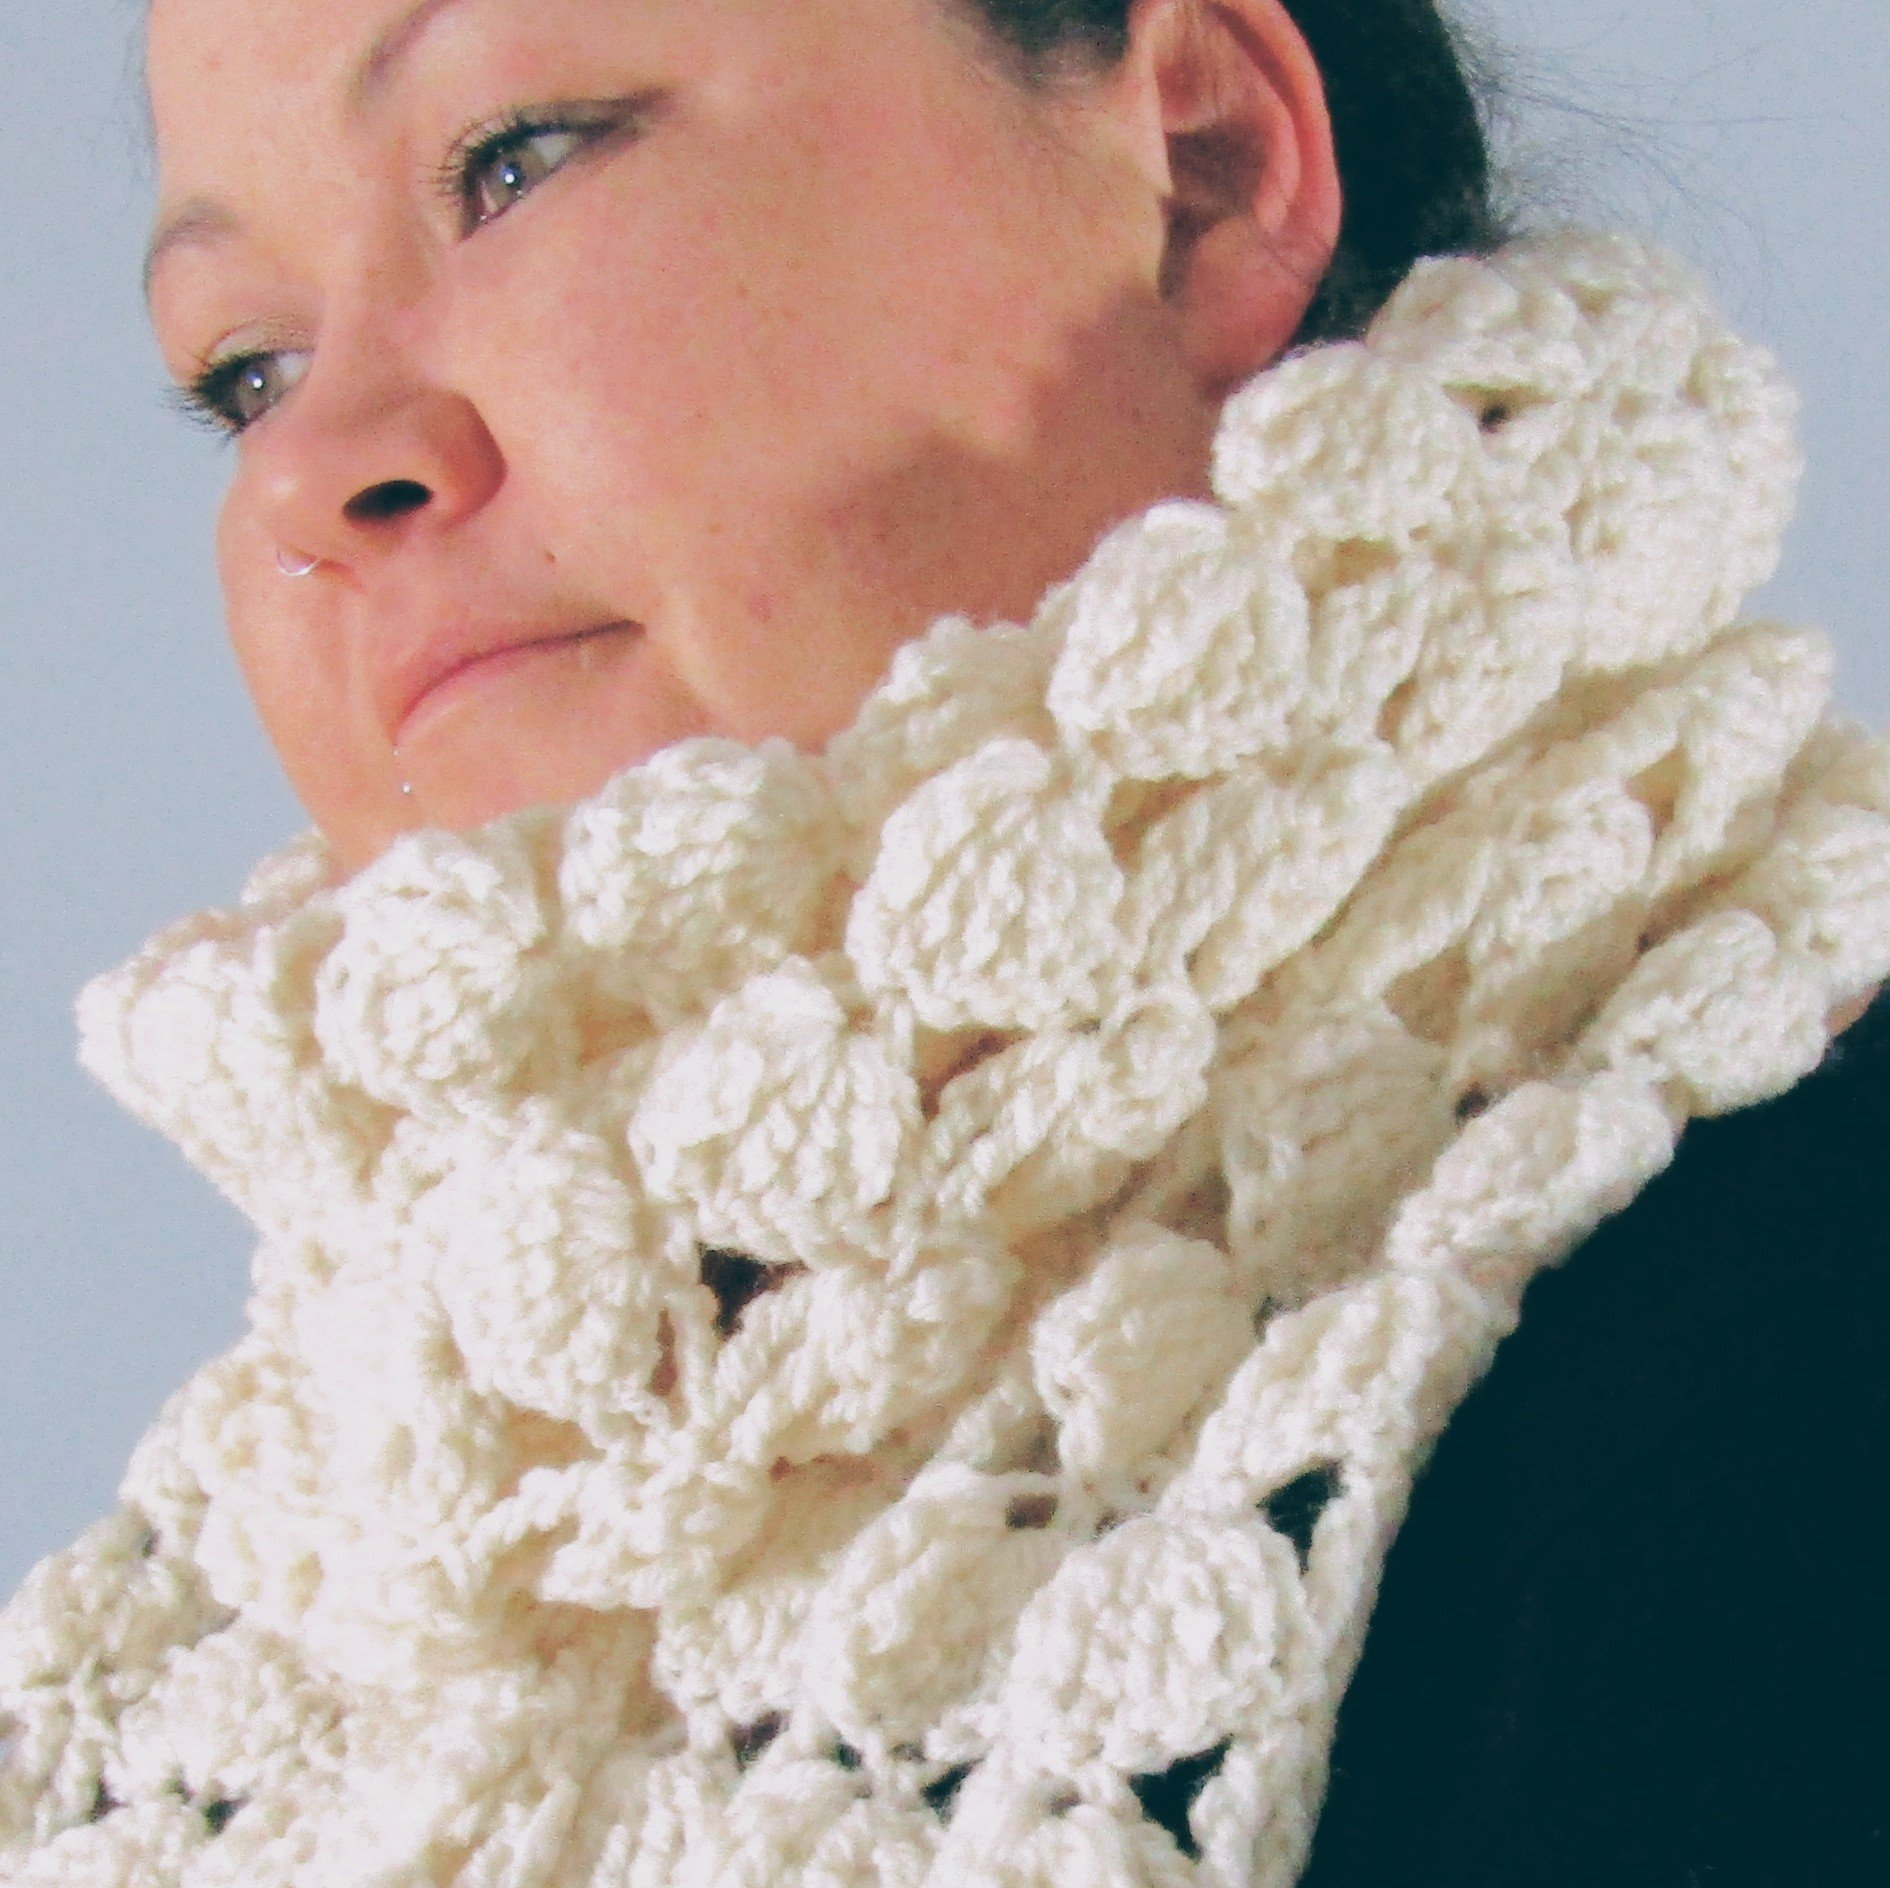 Winter White Crochet Scarf by Shoreline food and crafts Co. Mayo - Parad e- Handmade